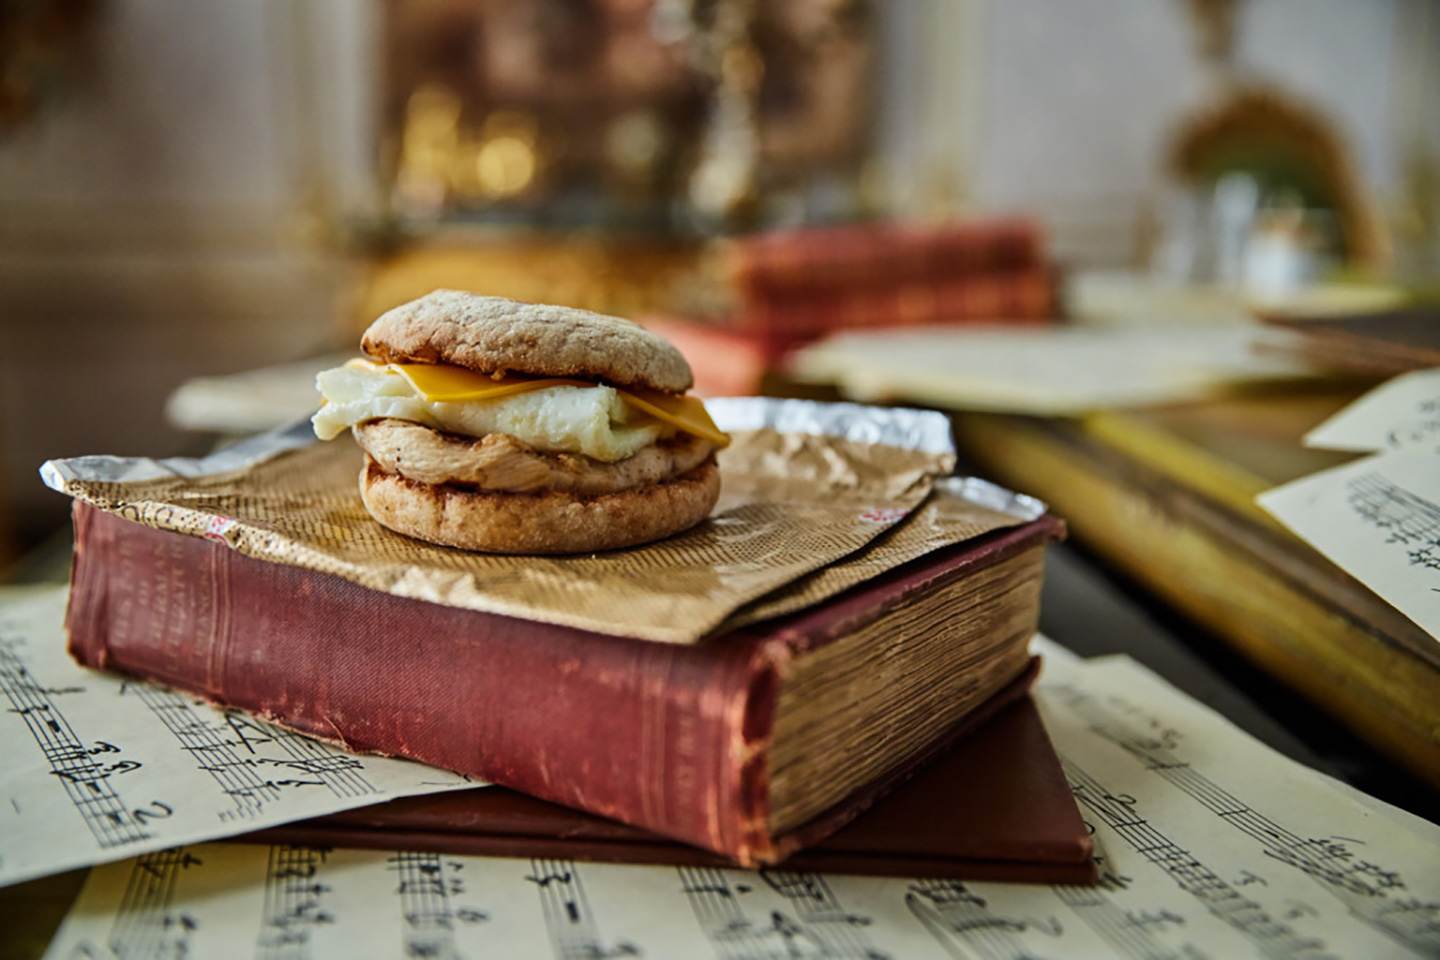 Egg white grill sitting on a stack of books